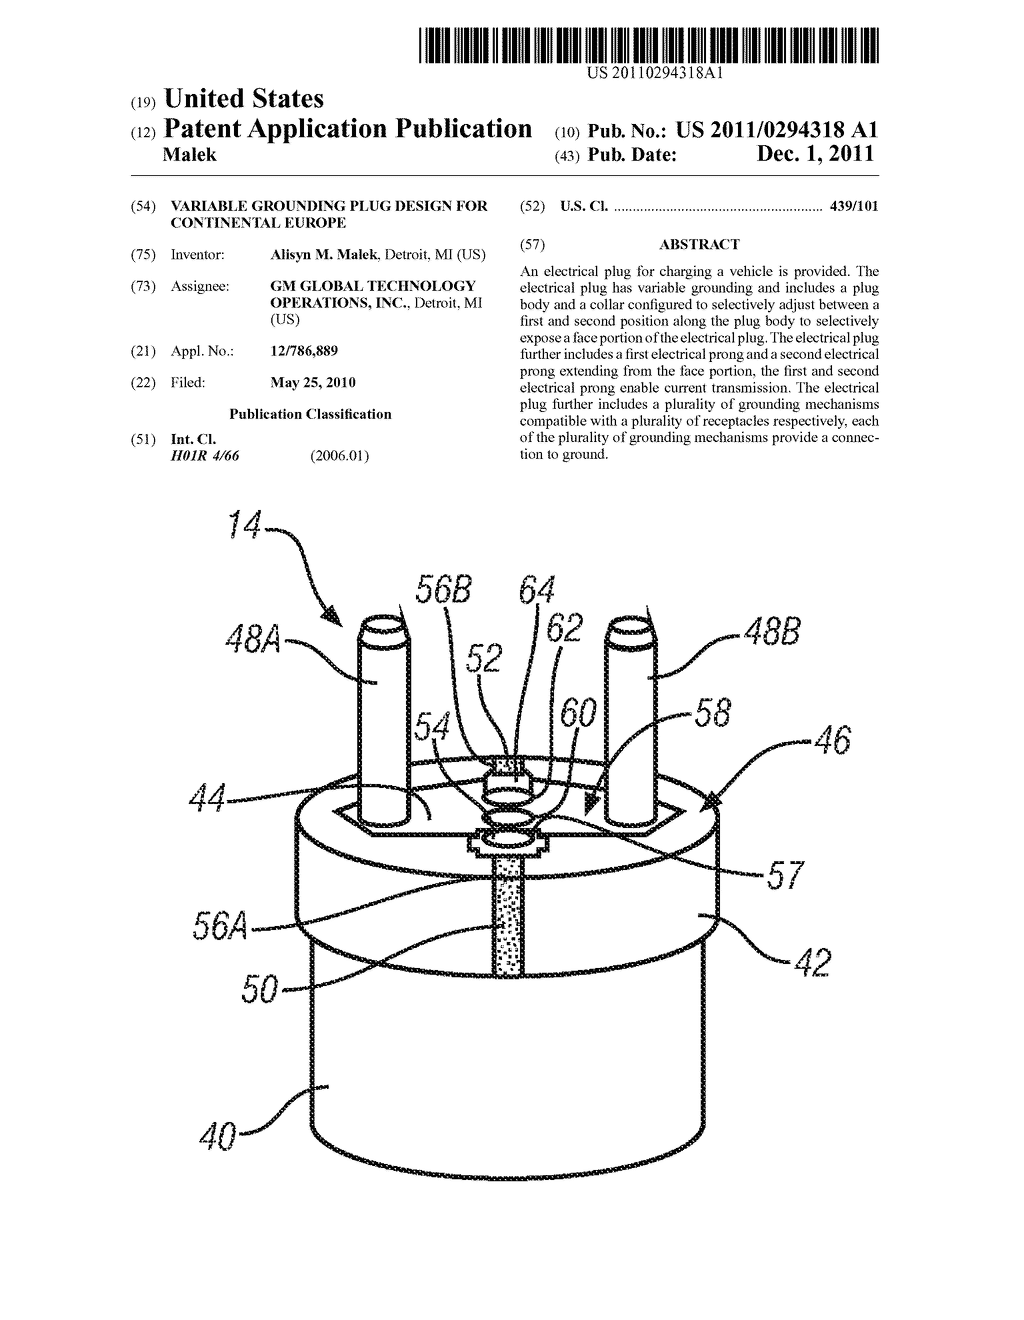 hight resolution of variable grounding plug design for continental europe diagram schematic and image 01